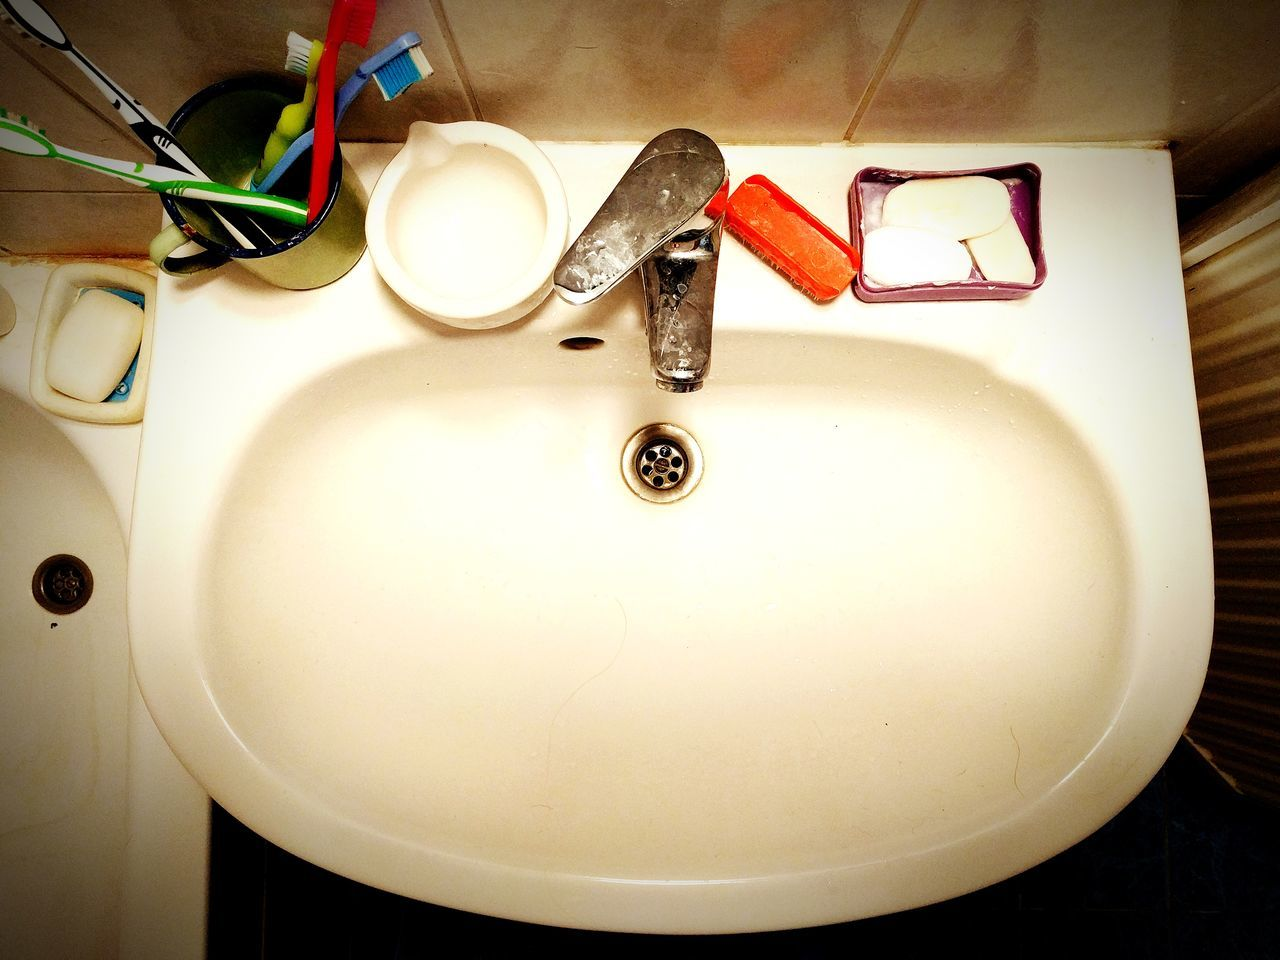 indoors, high angle view, no people, domestic room, bathroom, close-up, bathroom sink, day